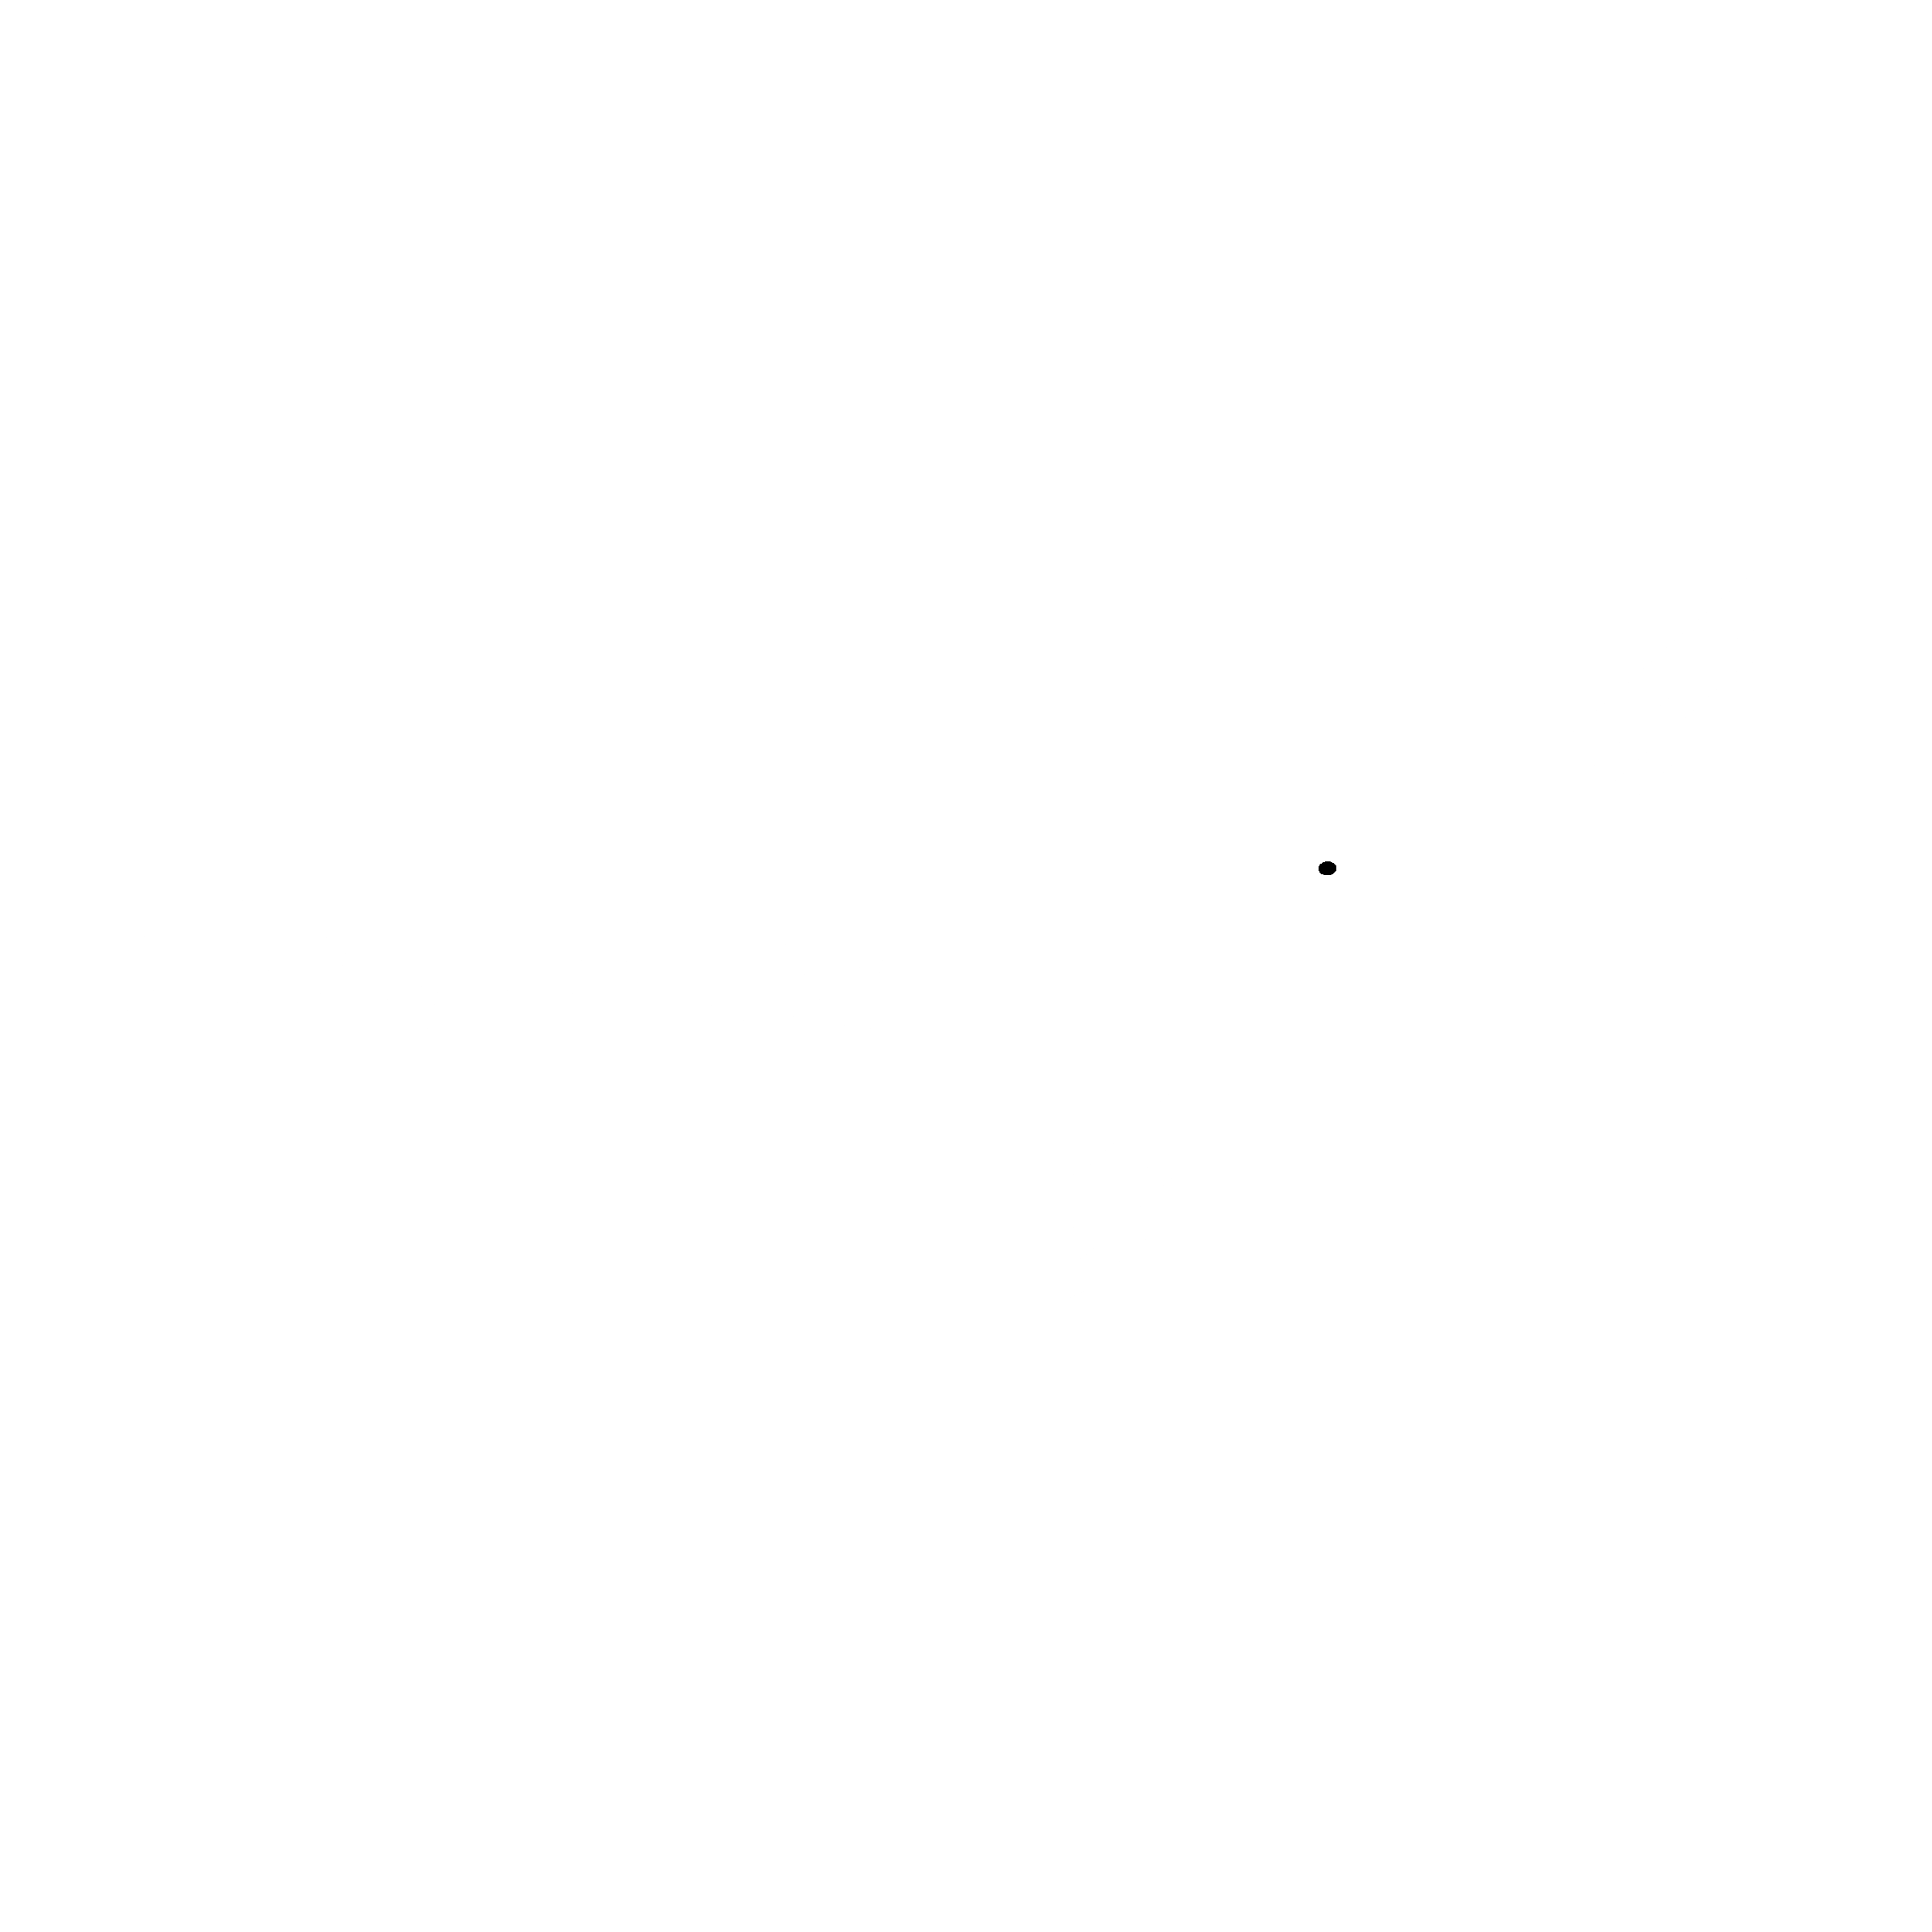 Egypt Air Logo PNG Transparent & SVG Vector.